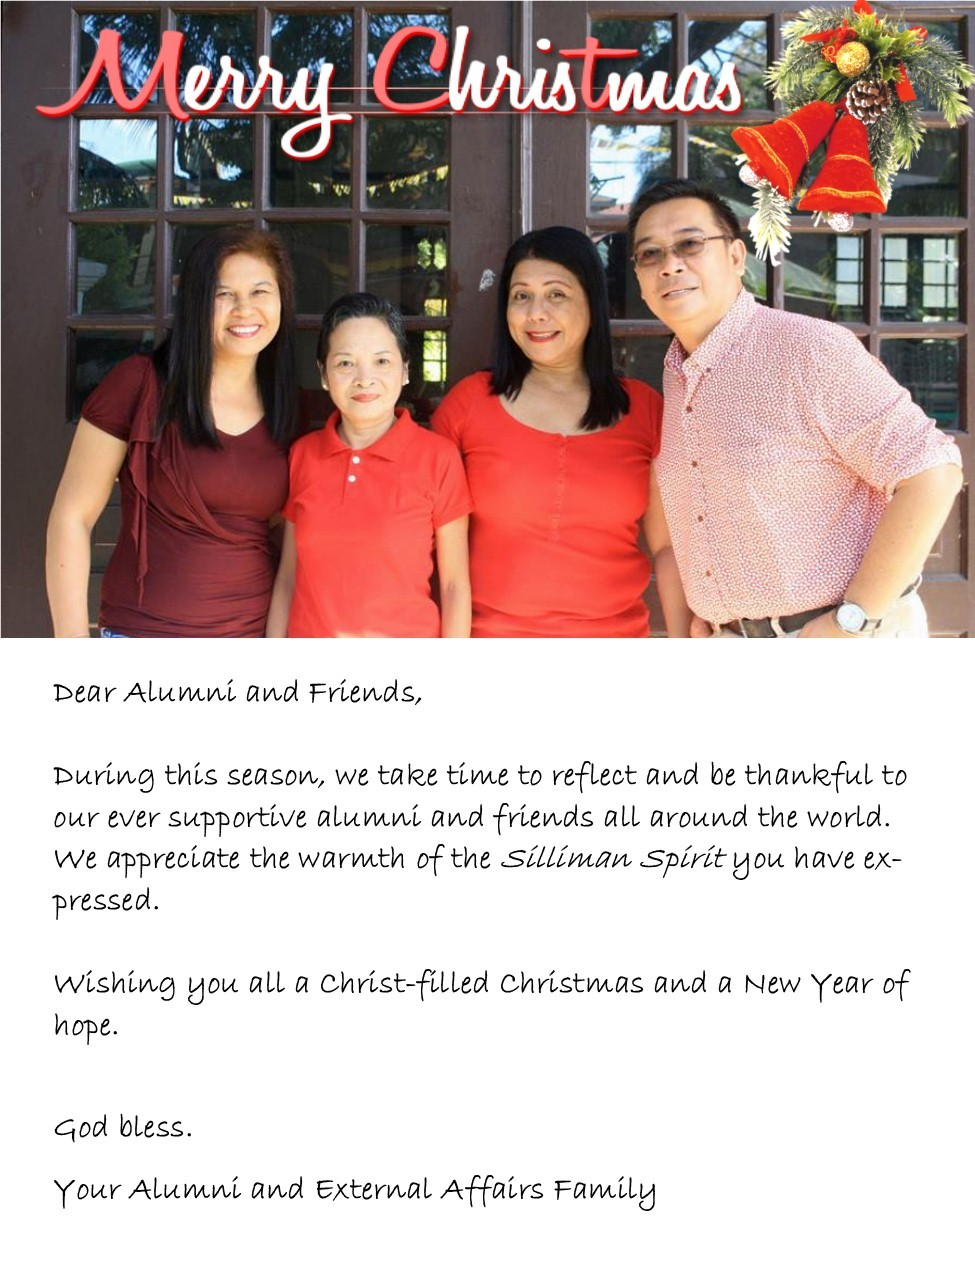 A Christmas Message from the Office of Alumni and External Affairs